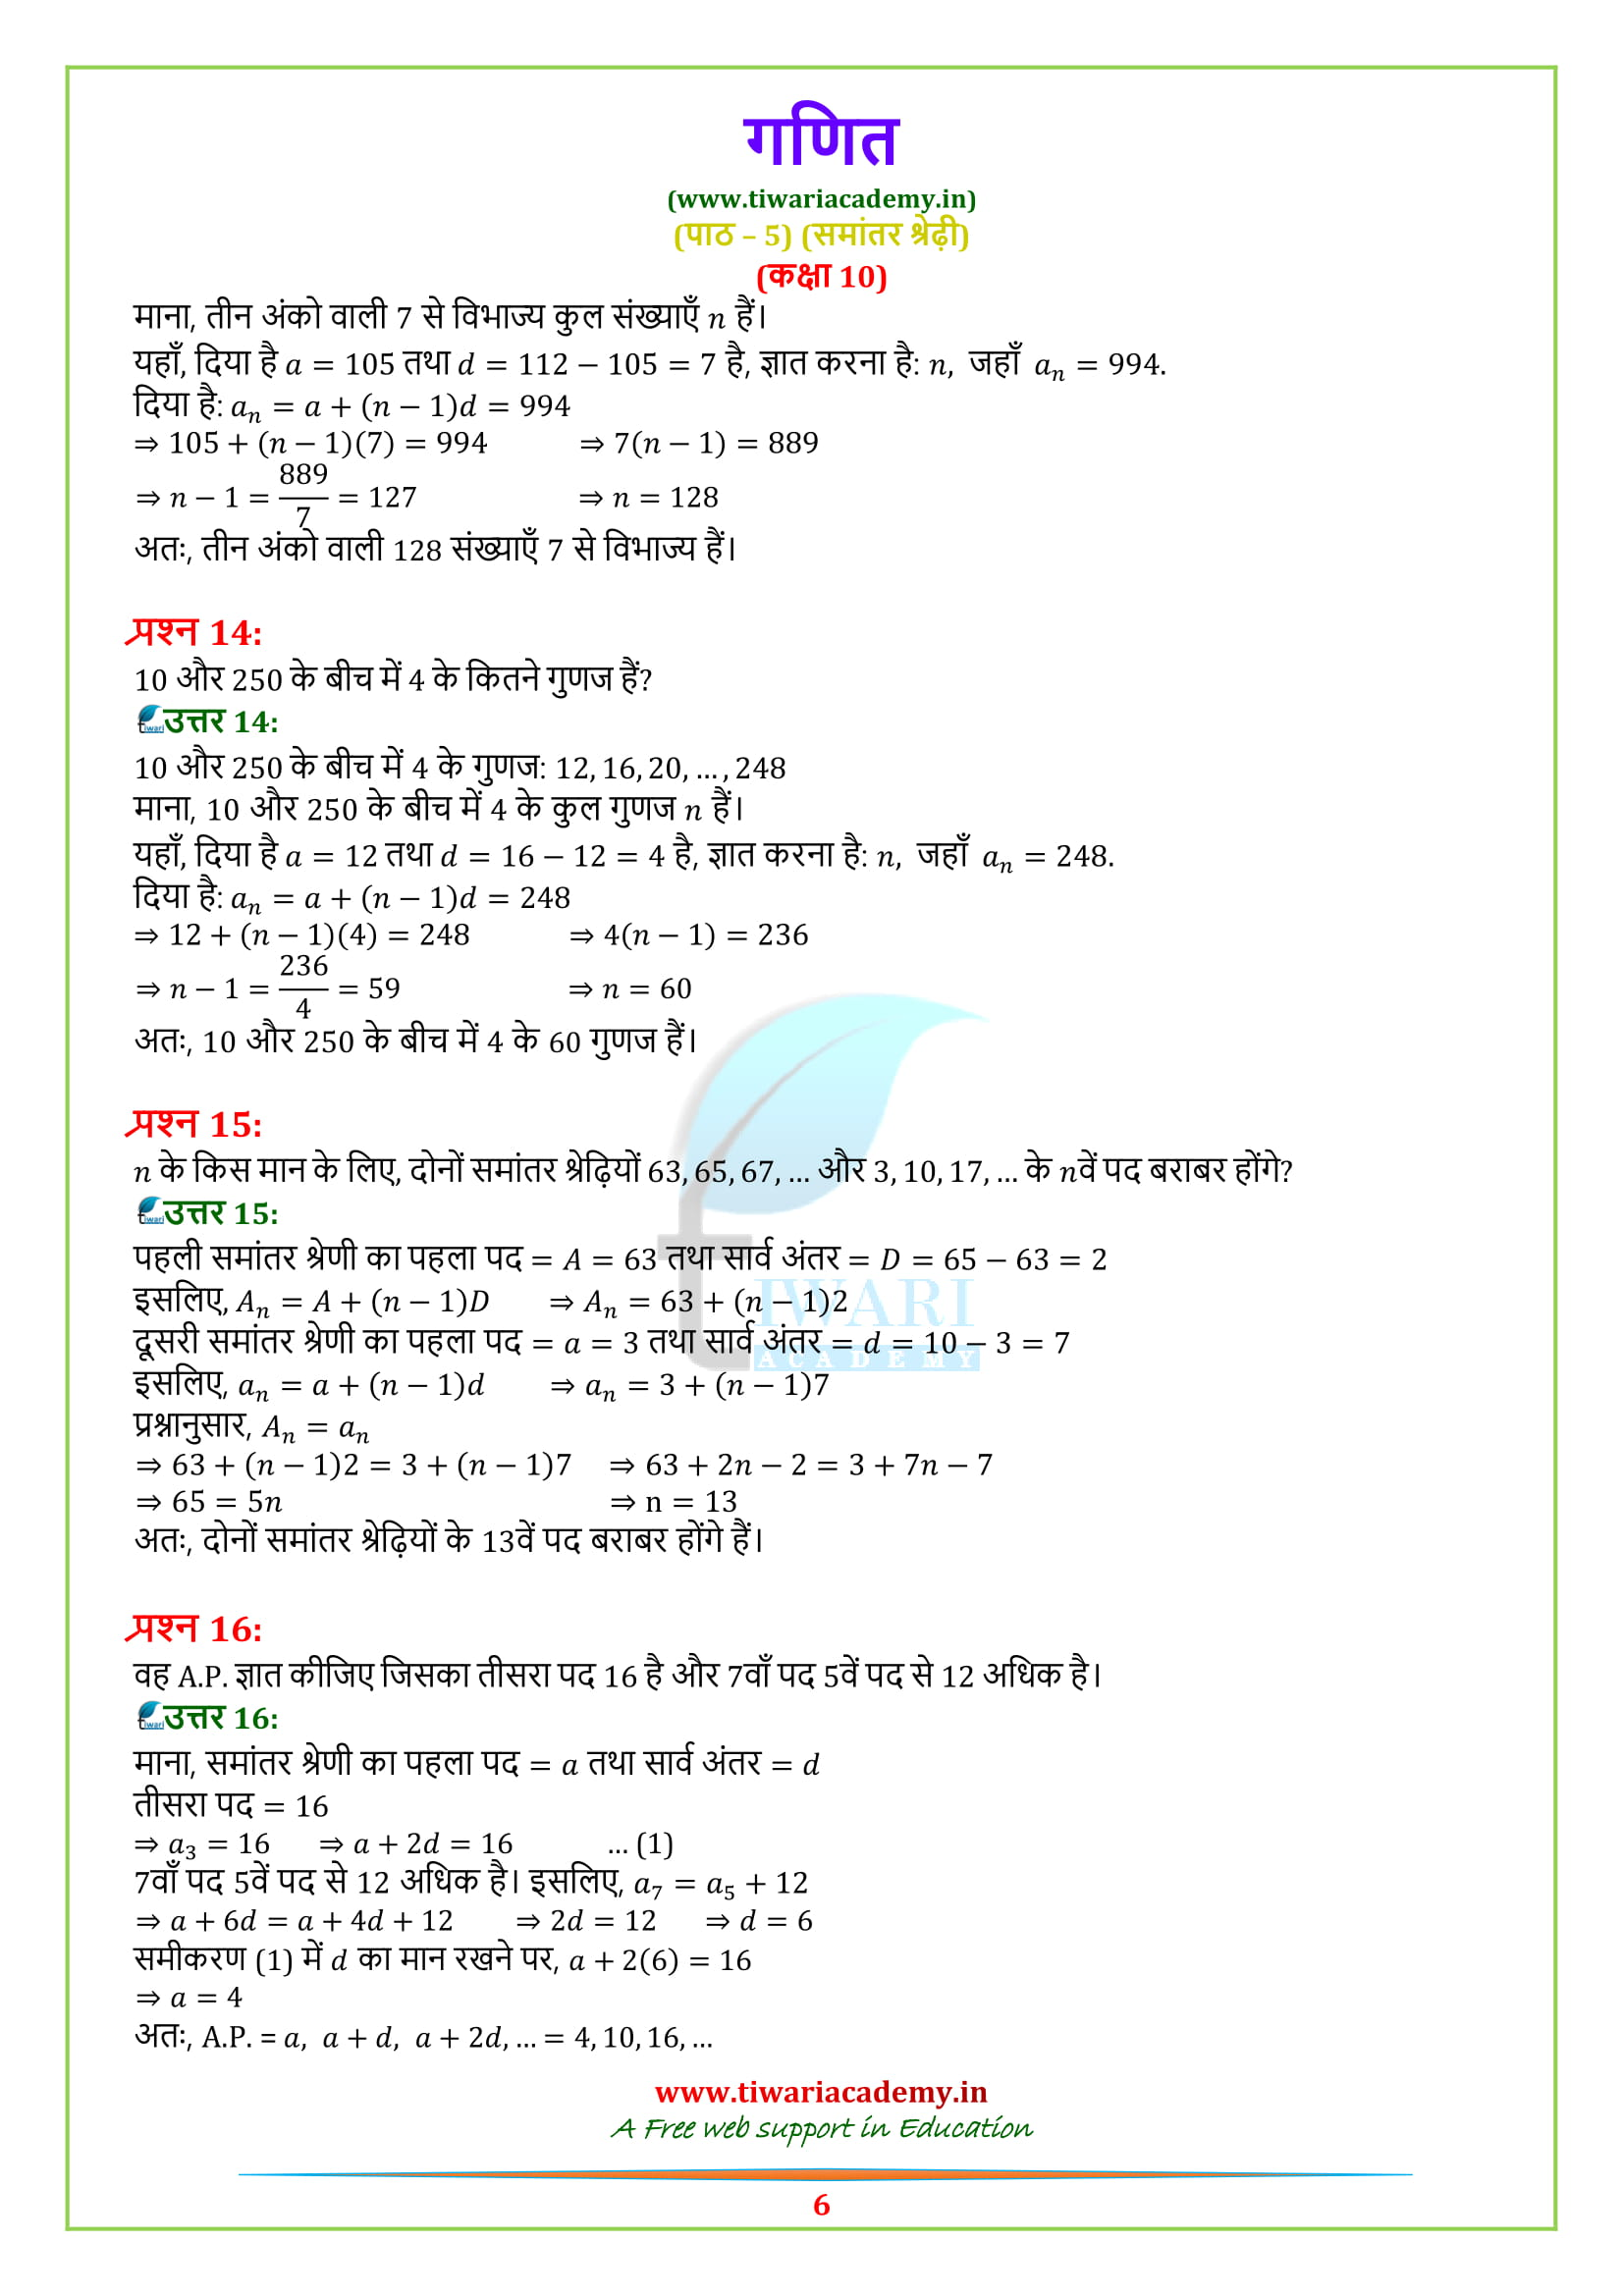 NCERT Solutions for Class 10 Maths exercise 5.2 all question answers